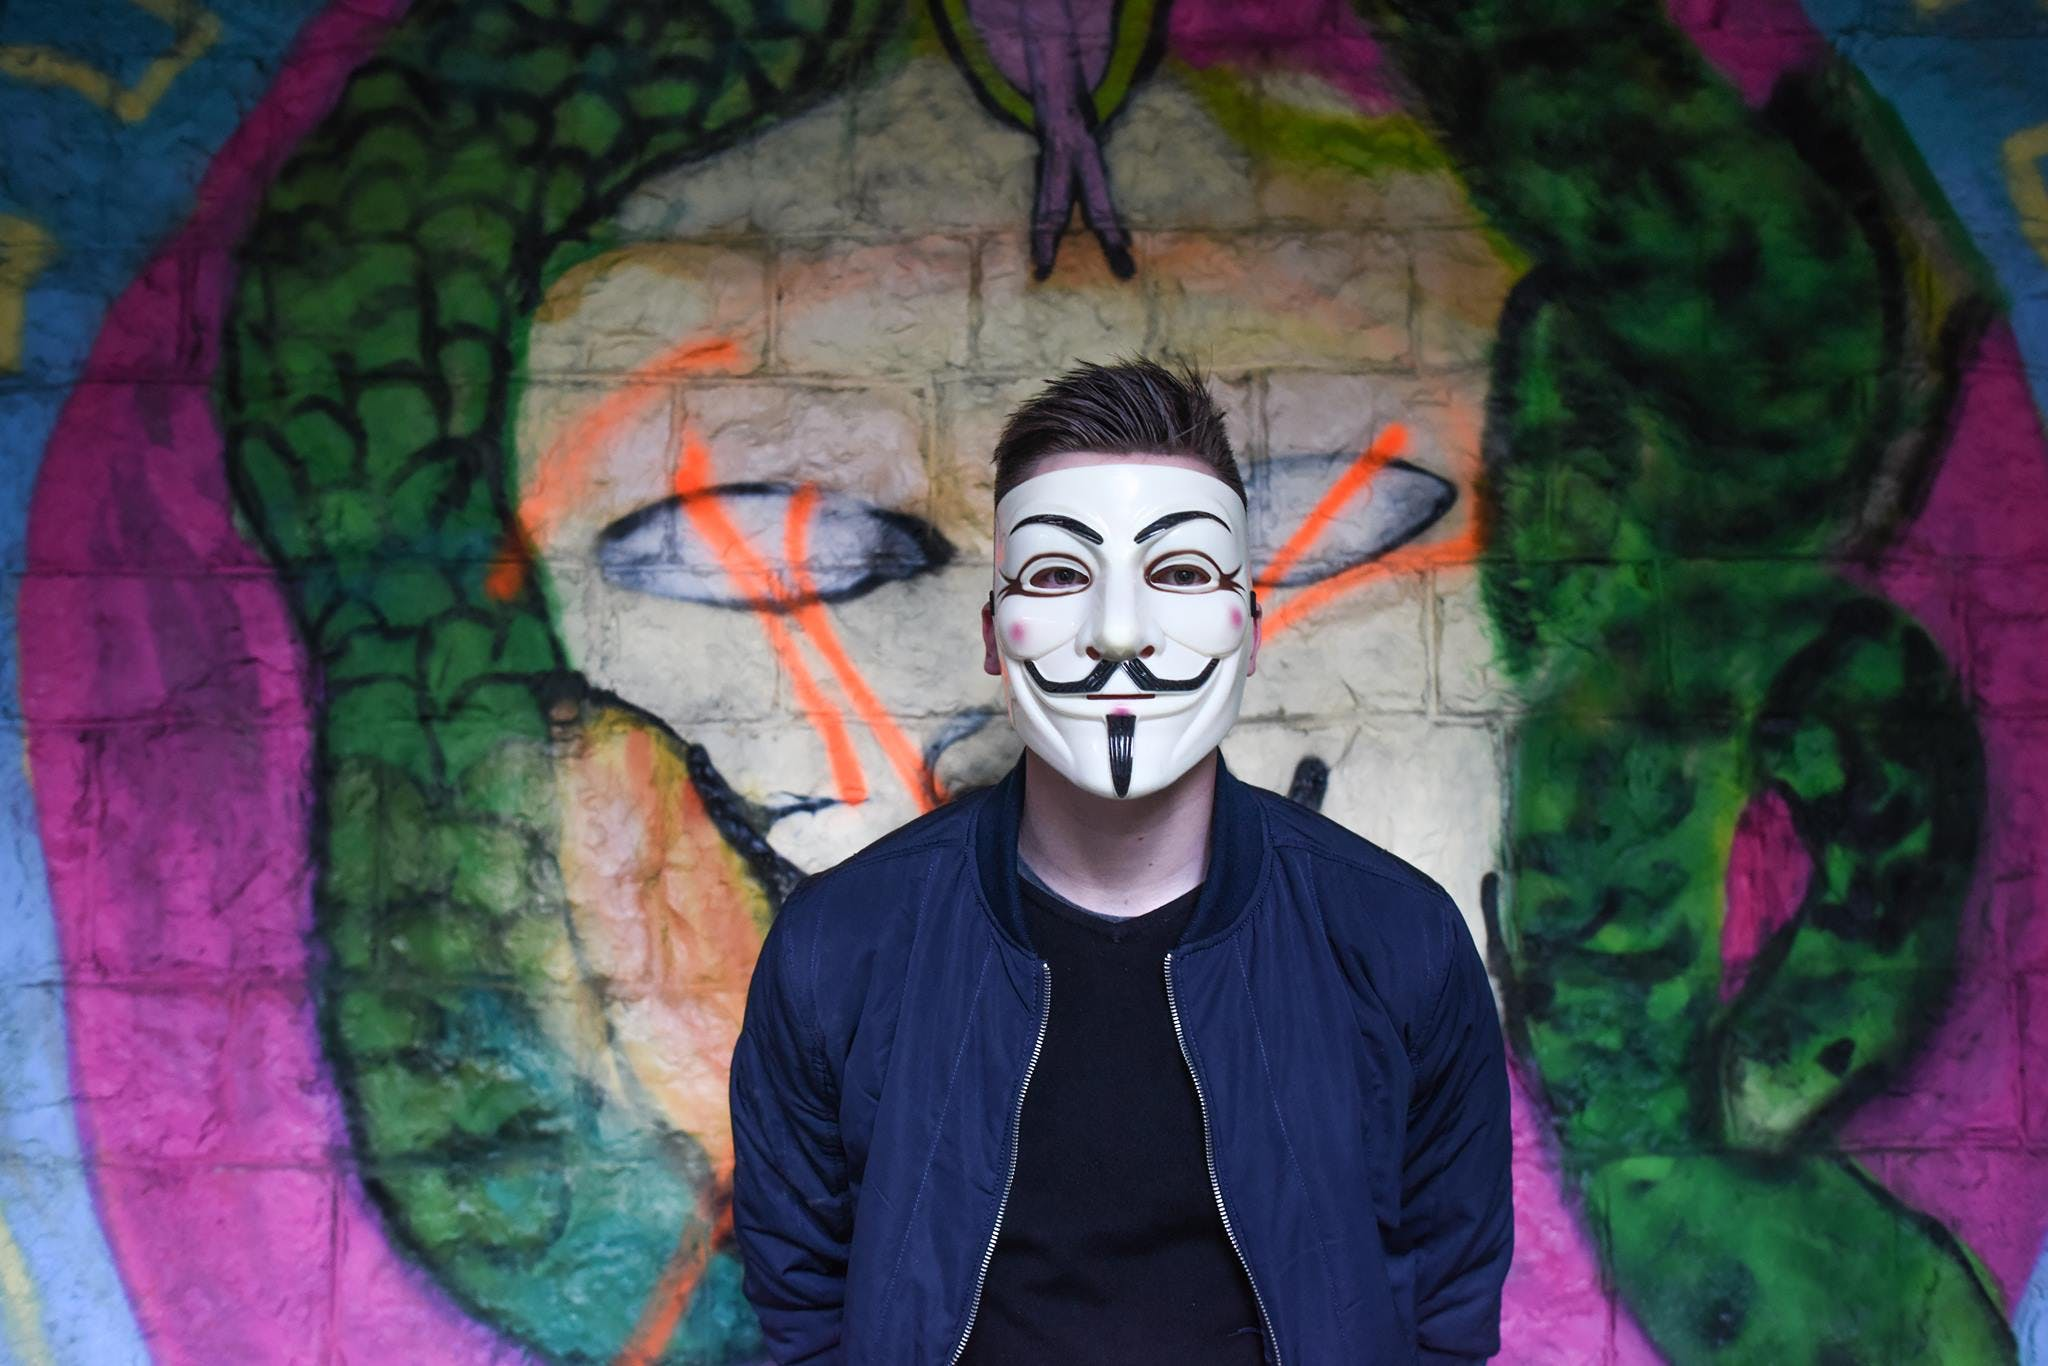 Man in White Mask in Black Crew Neck Shirt and Blue Zip Up Jacket Infront Graffiti Wall